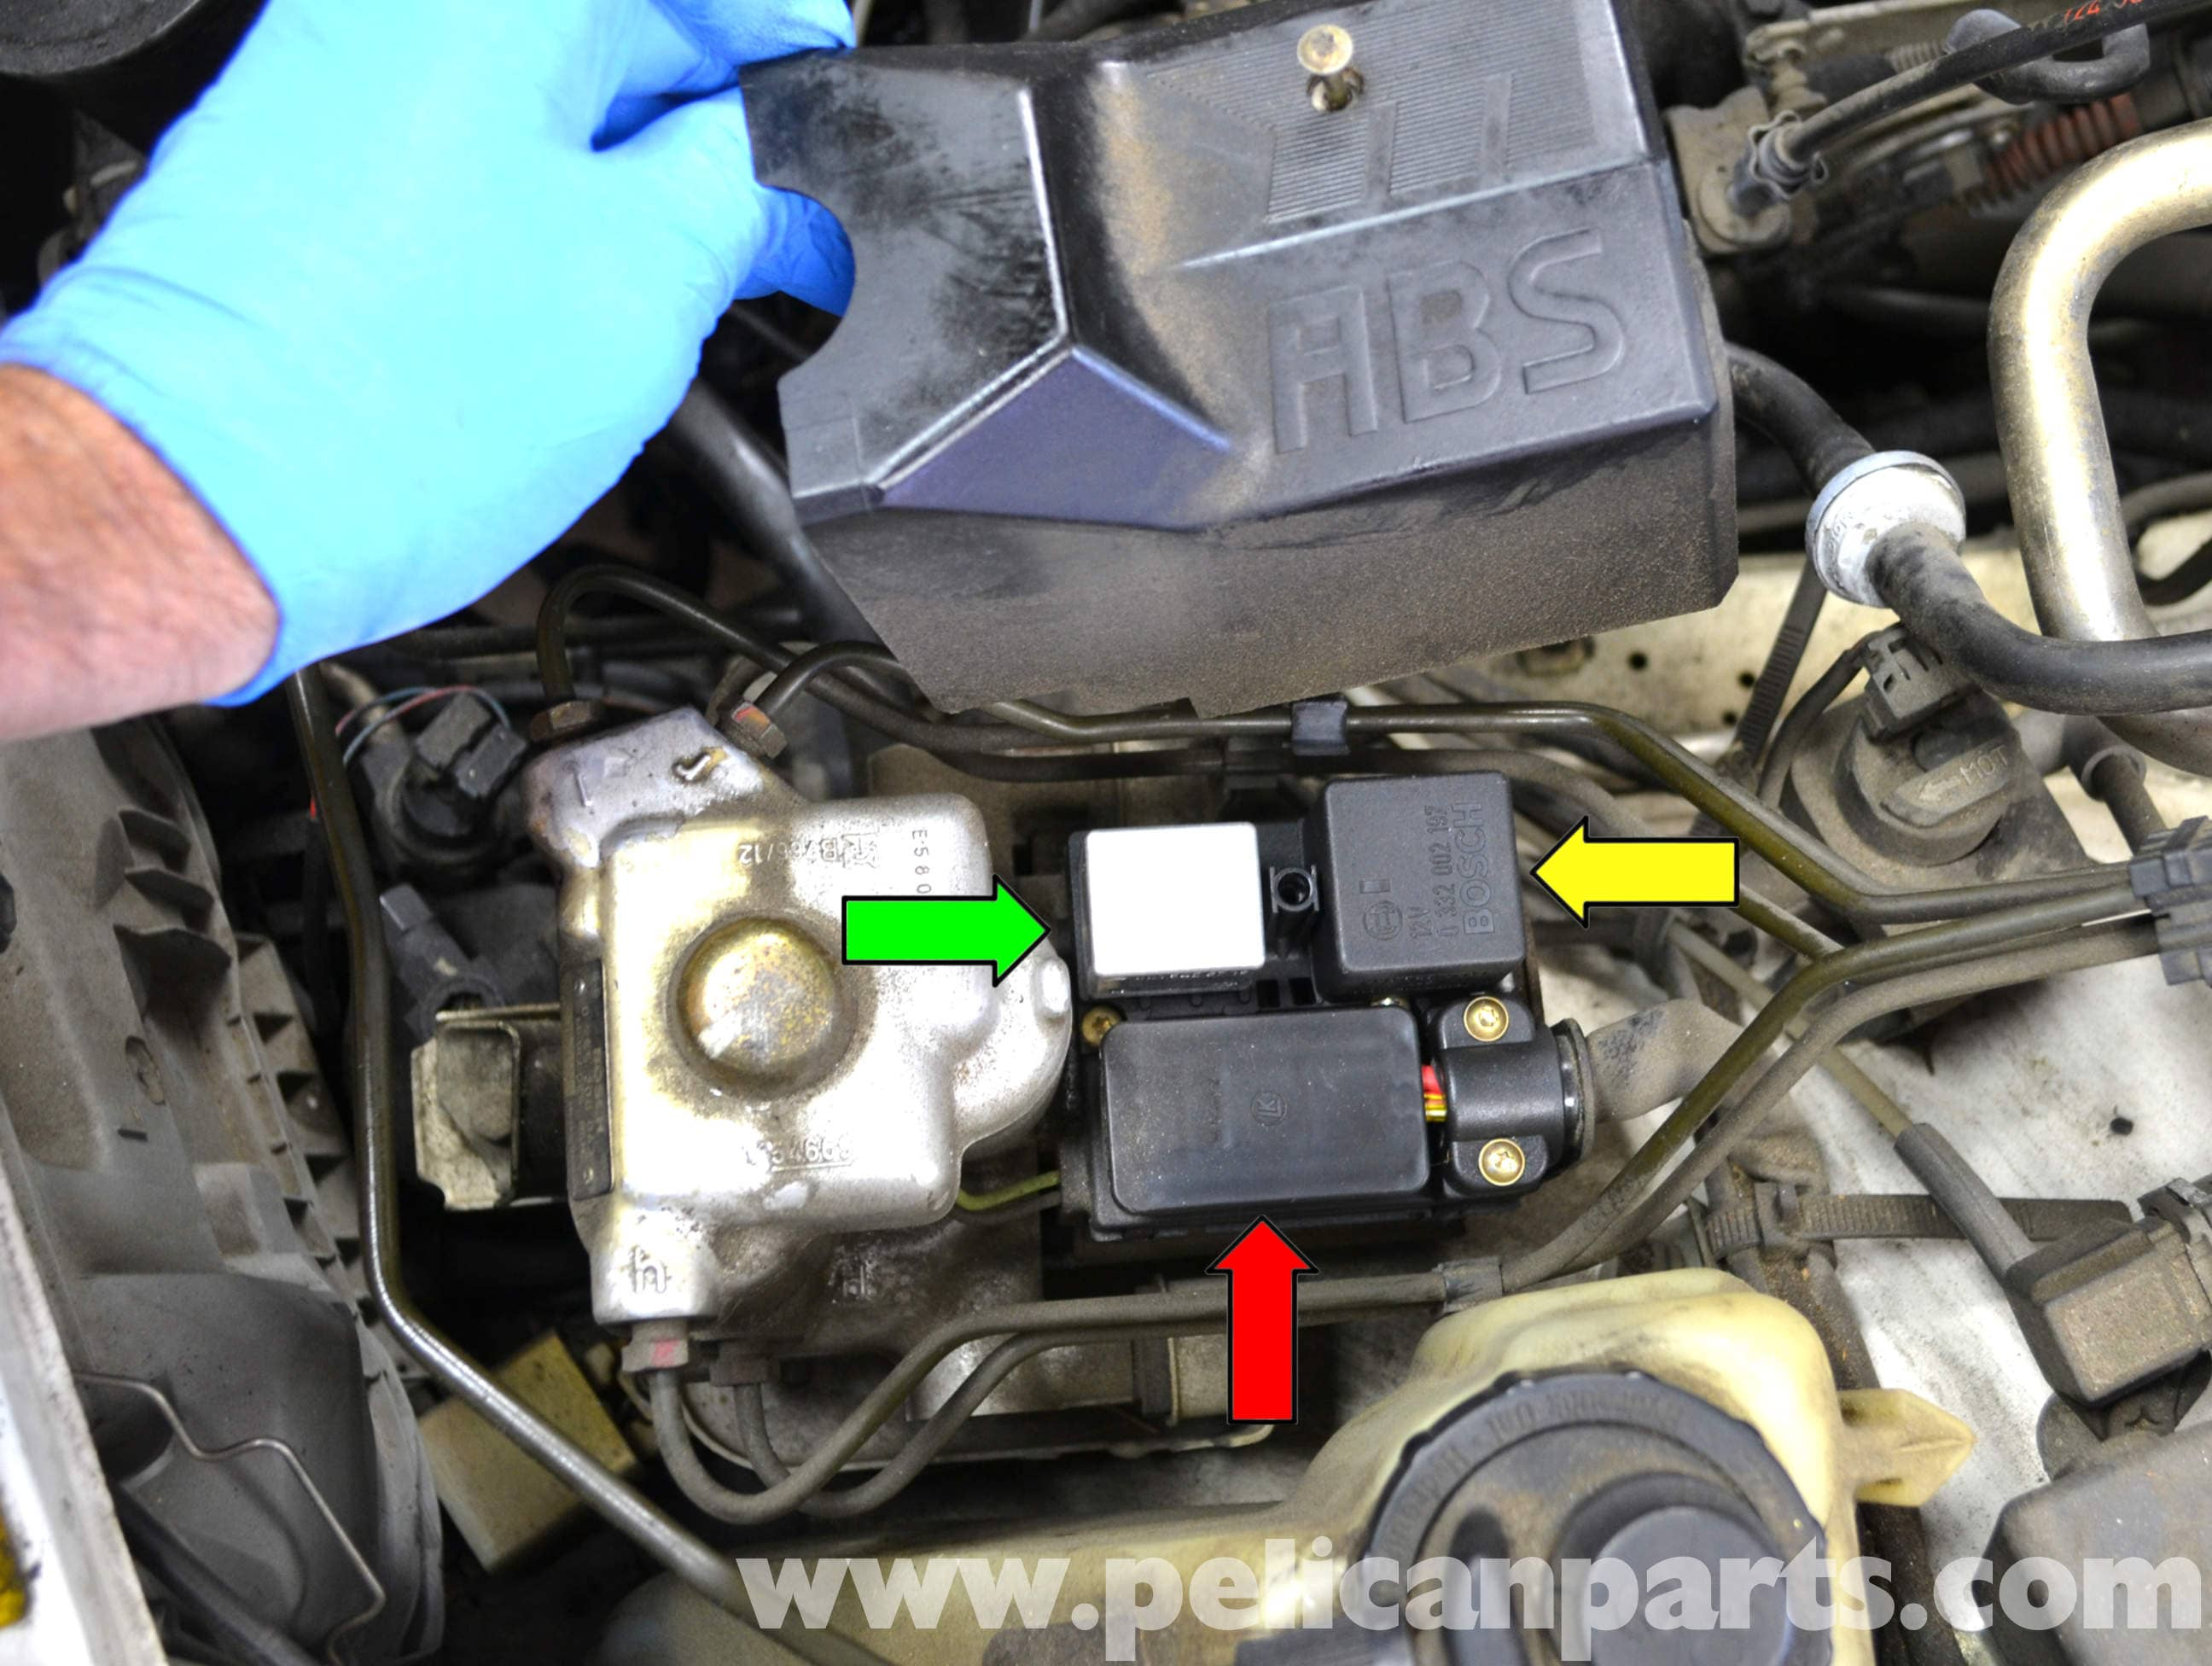 Mercedes Benz W124 ABS Relay And Pump Replacement 1986 1995 E